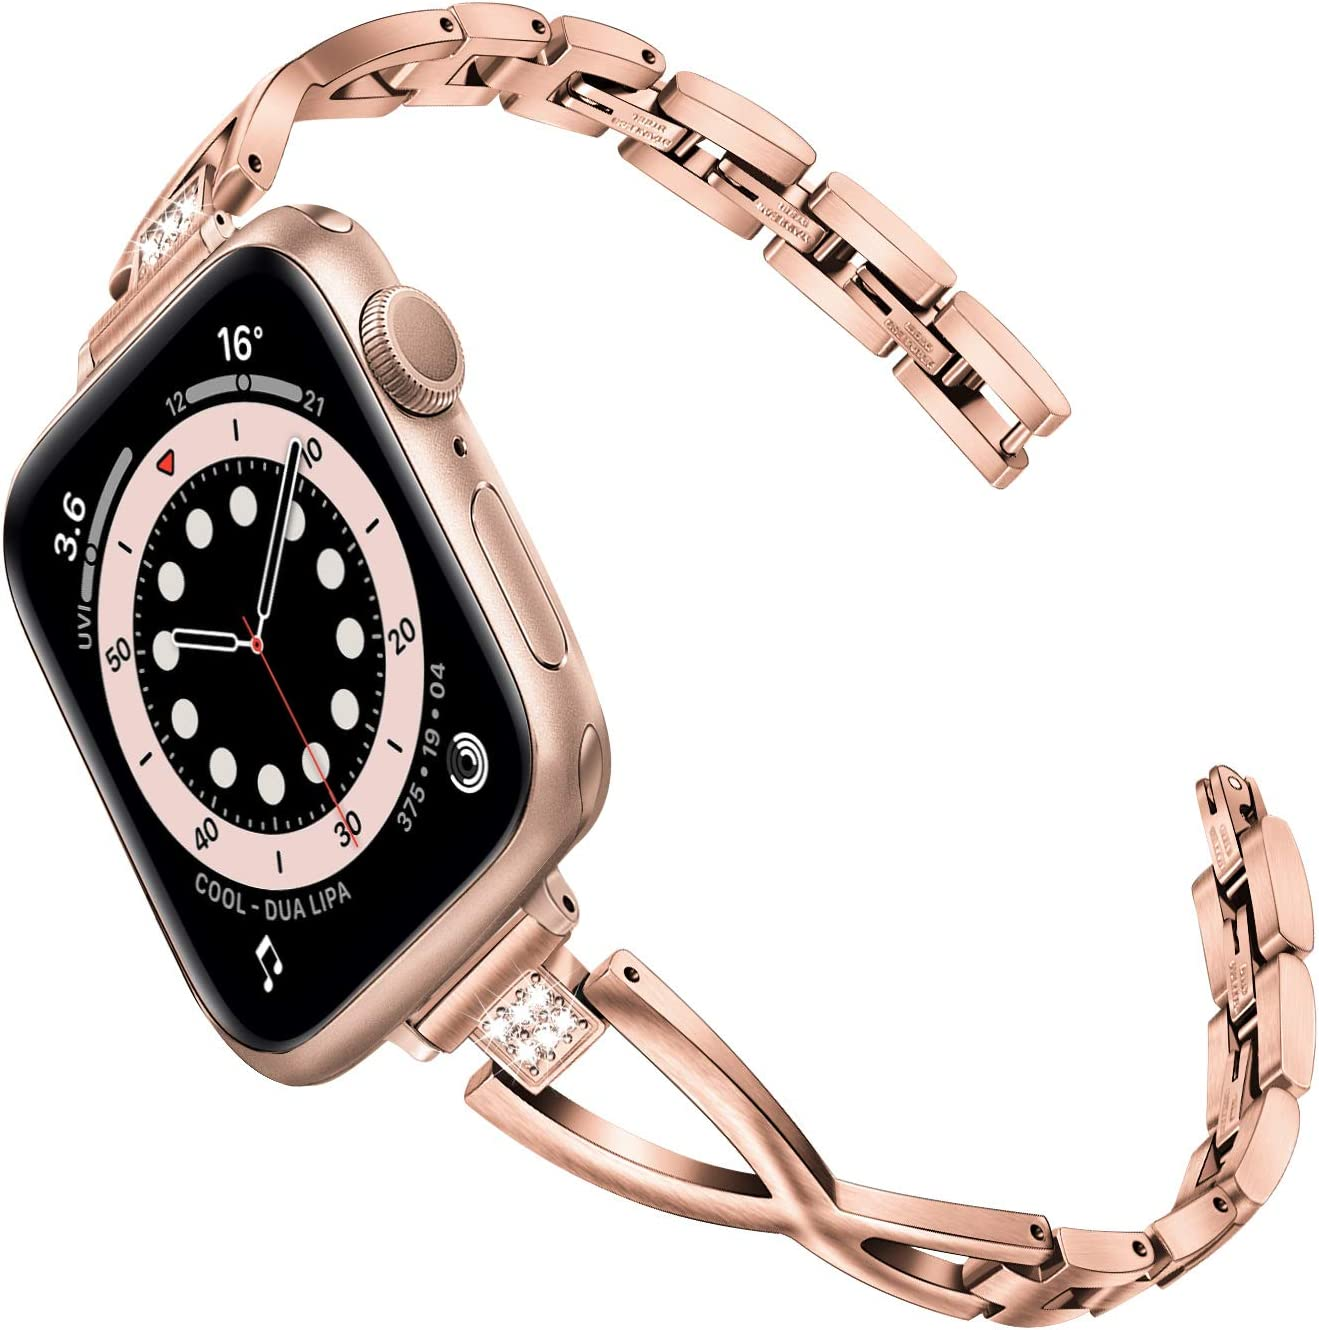 TRUMiRR Women Band for Apple Watch Series 6 / SE 40mm 38mm, Slim X-Link Stainless Steel & Rhinestone Diamond Watchband Bling Rose Gold Strap for iWatch Apple Watch SE Series 6 5 4 3 2 1 40mm 38mm